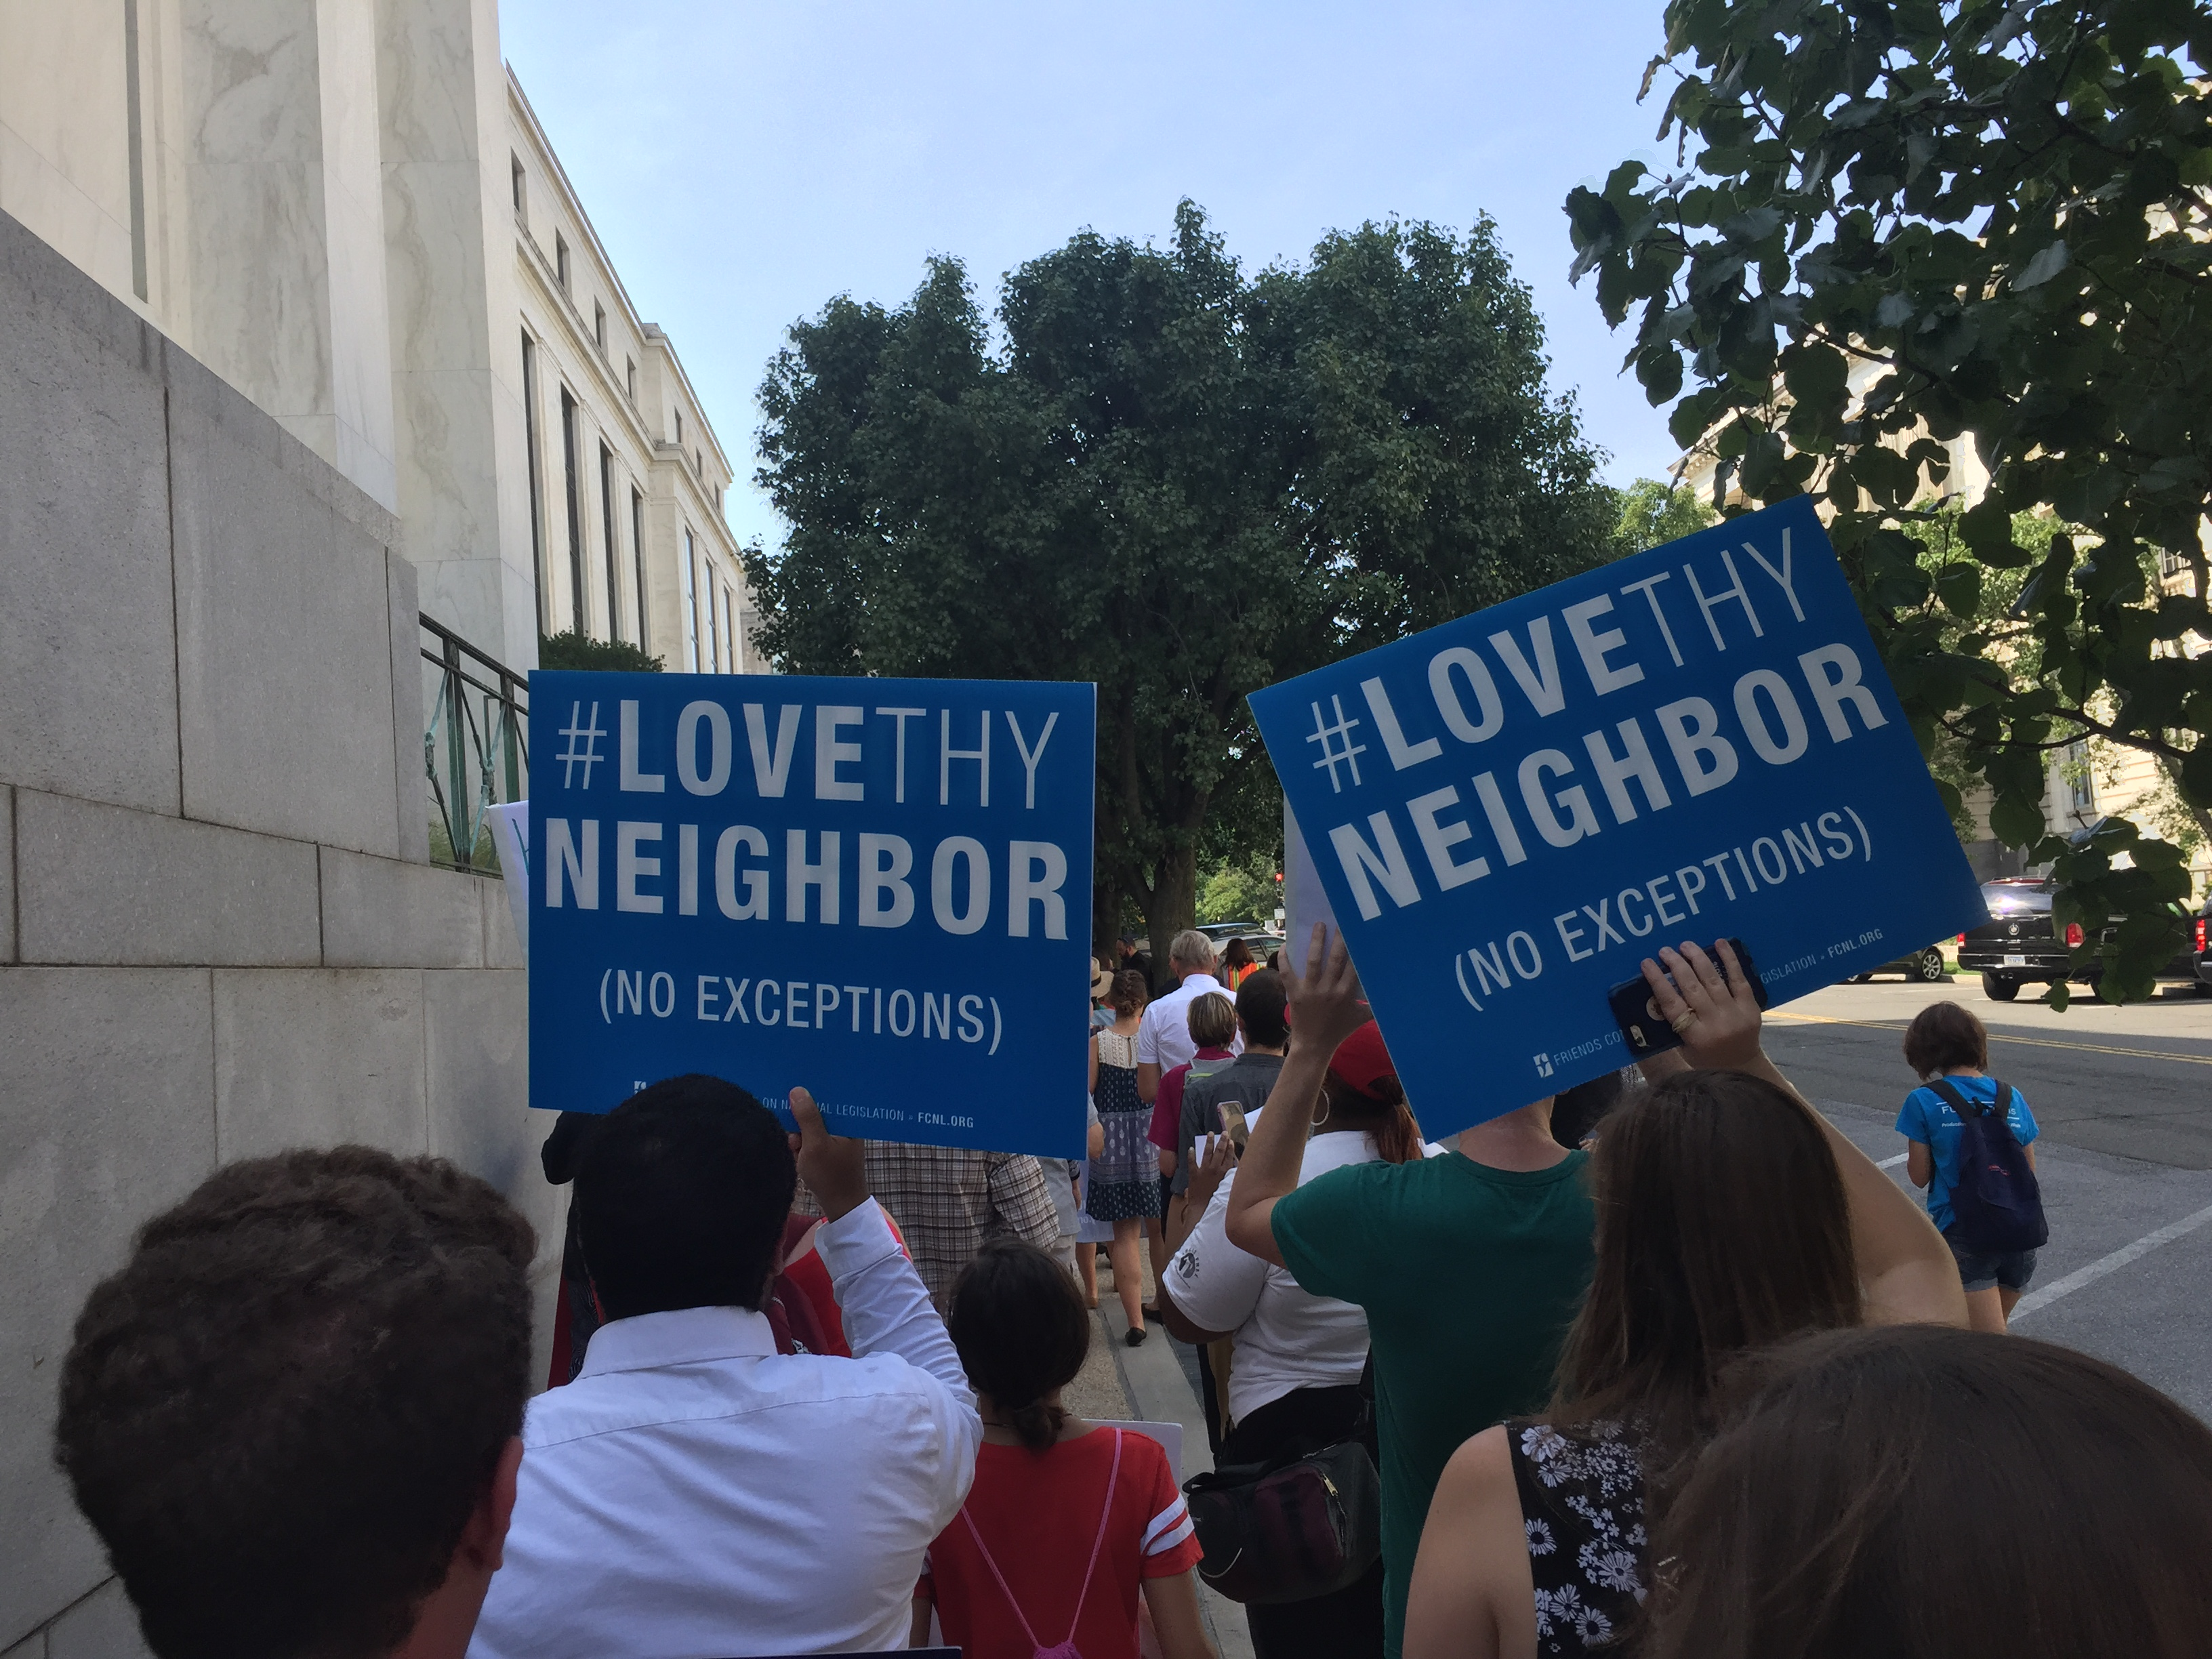 People marching with Love Thy Neighbor signs